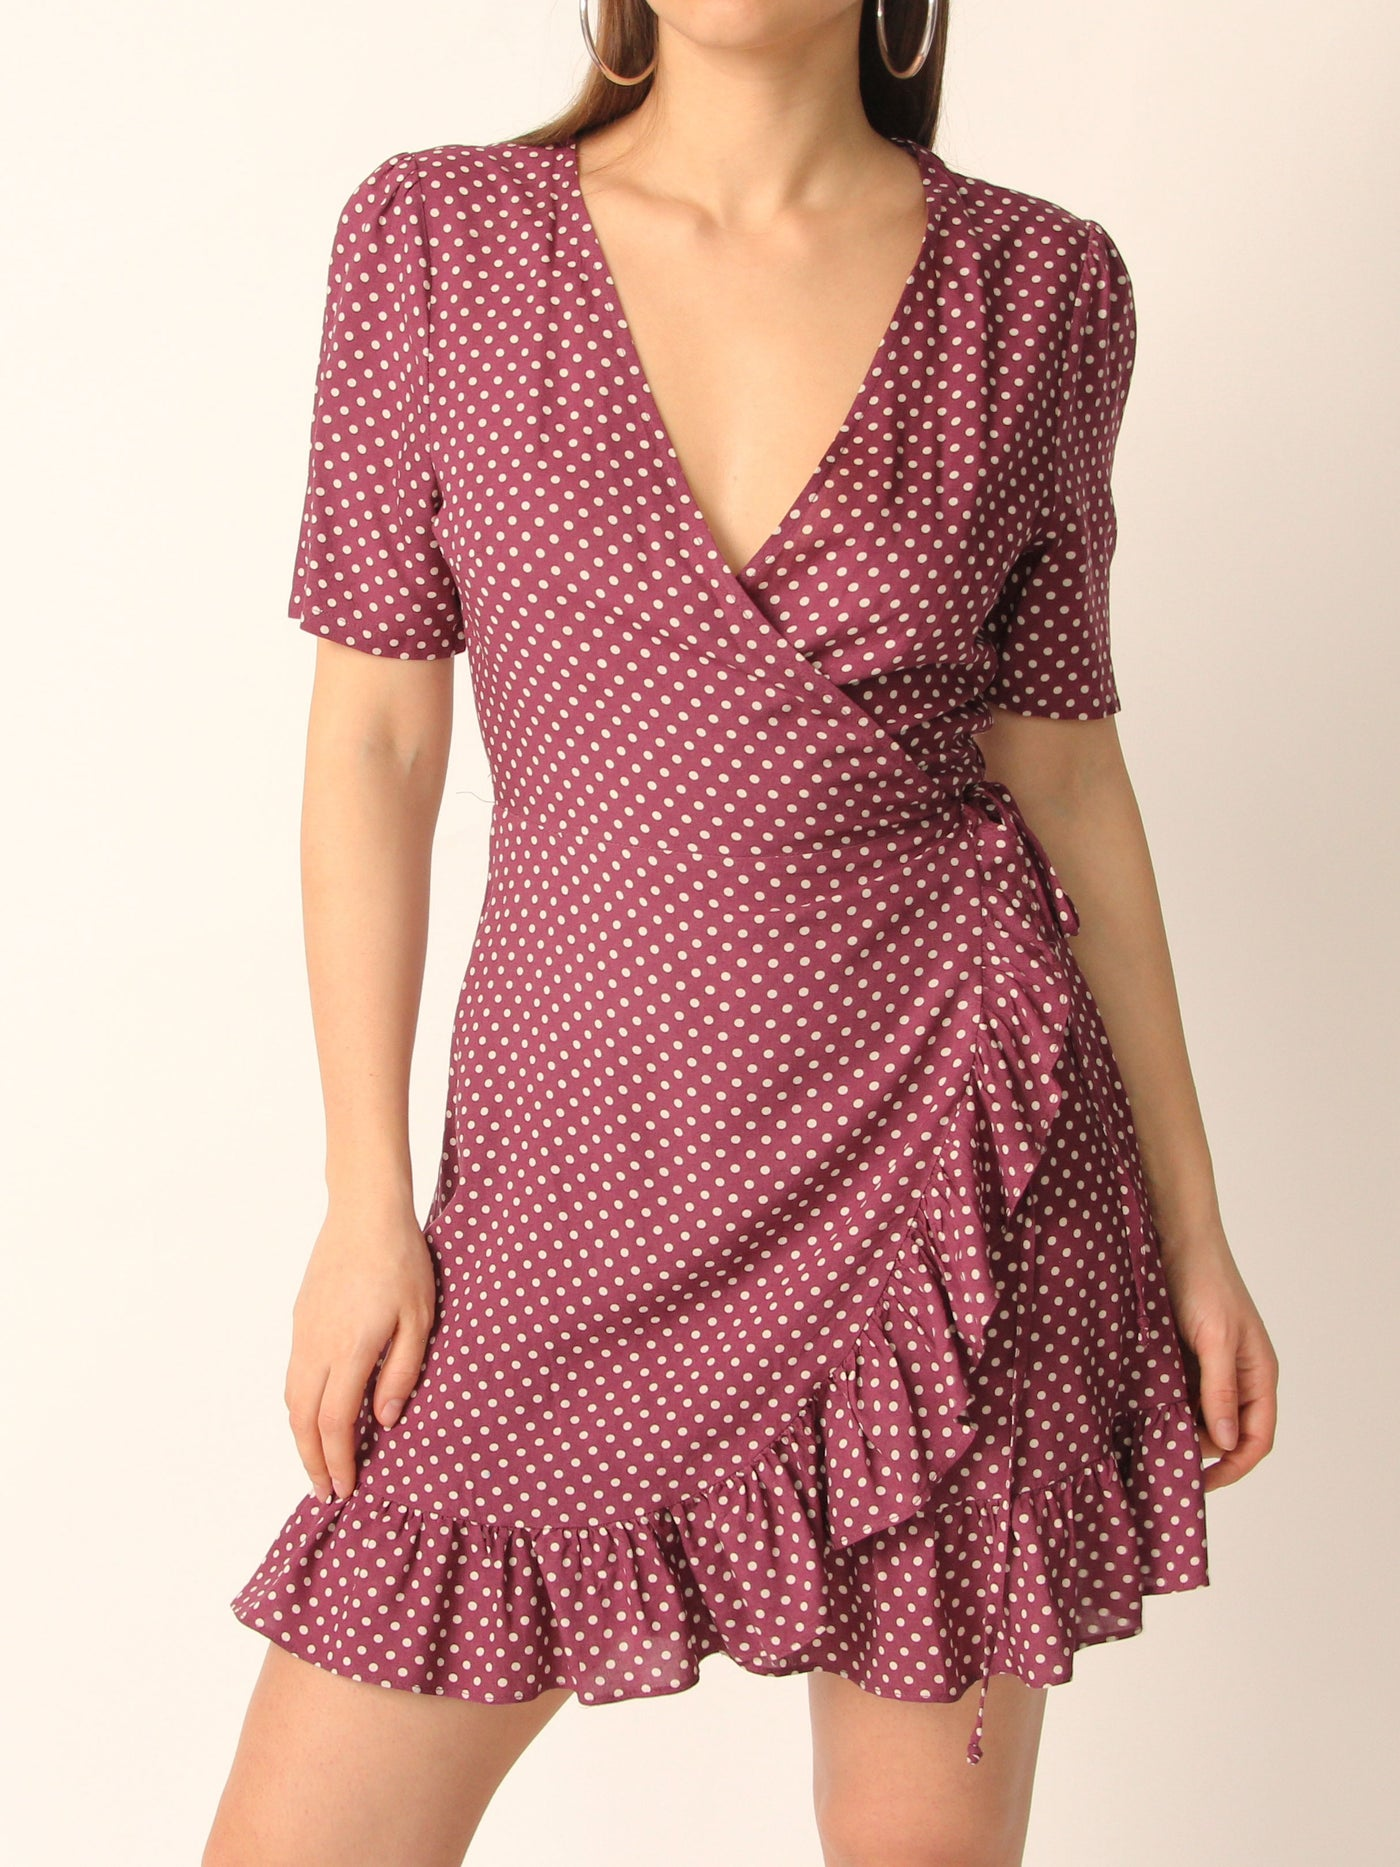 Berry Polka Dot Wrap Dress - Marble Hive